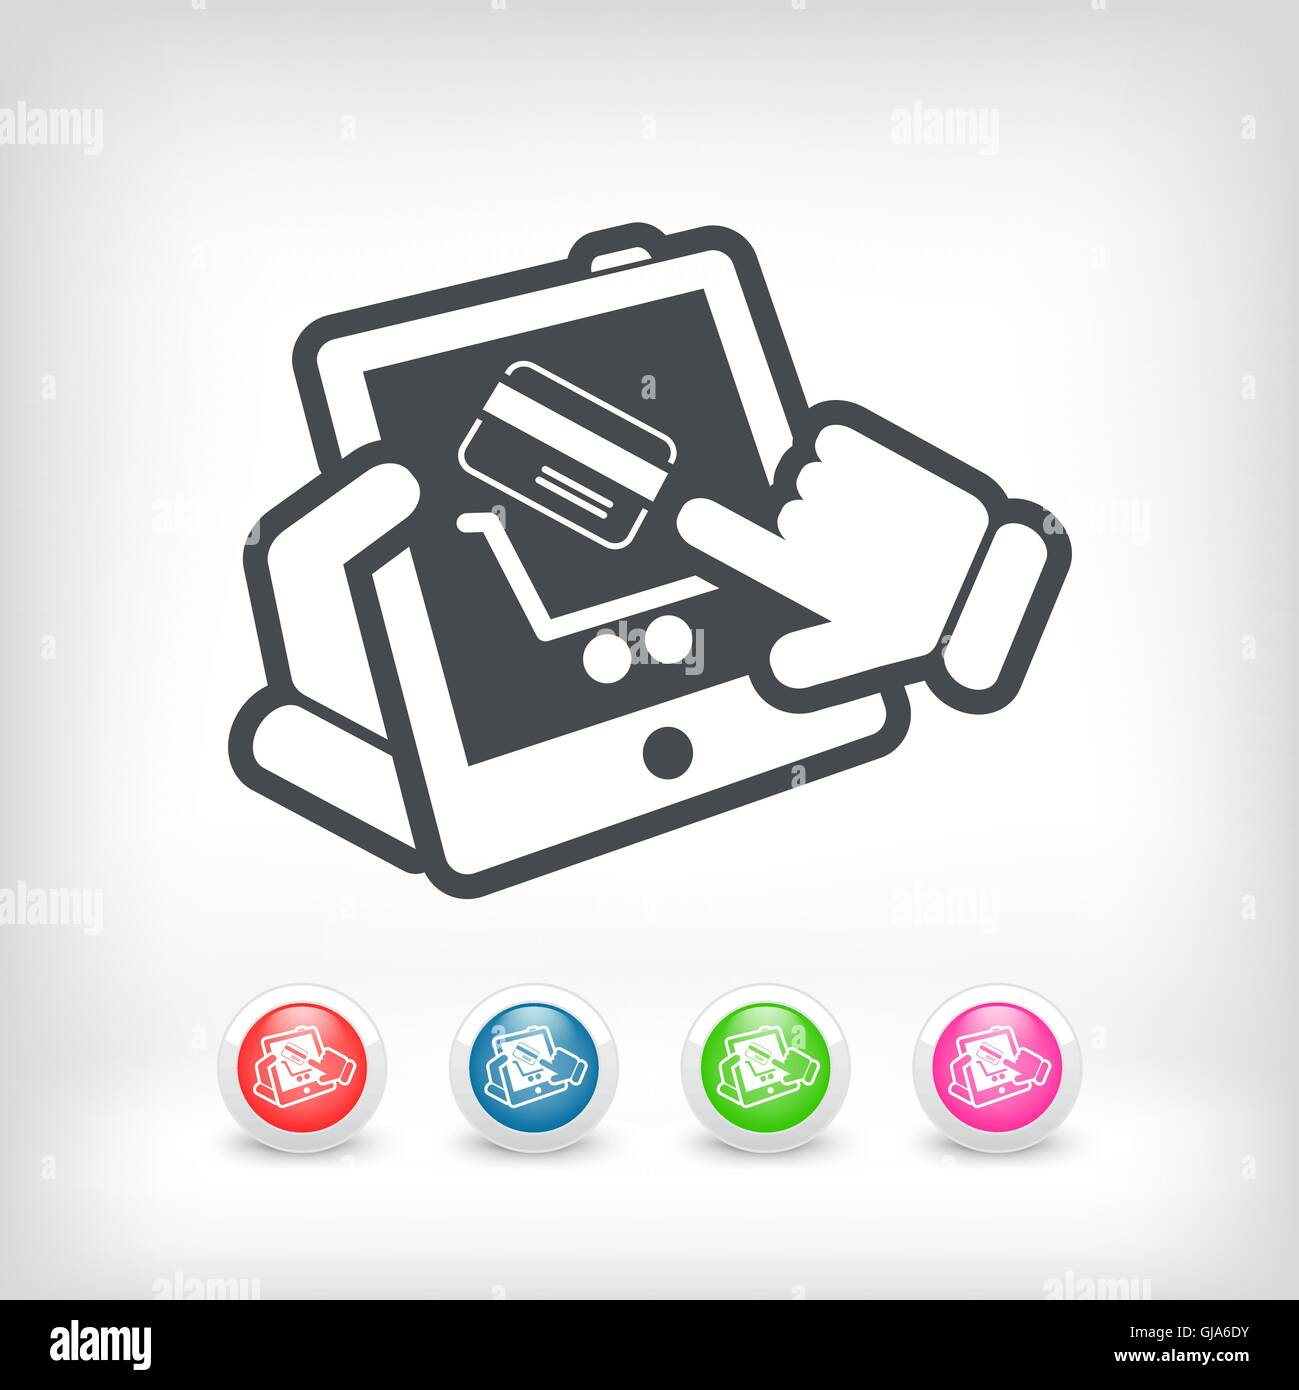 Credit Web Browser Stock Vector Images - Page 2 - Alamy